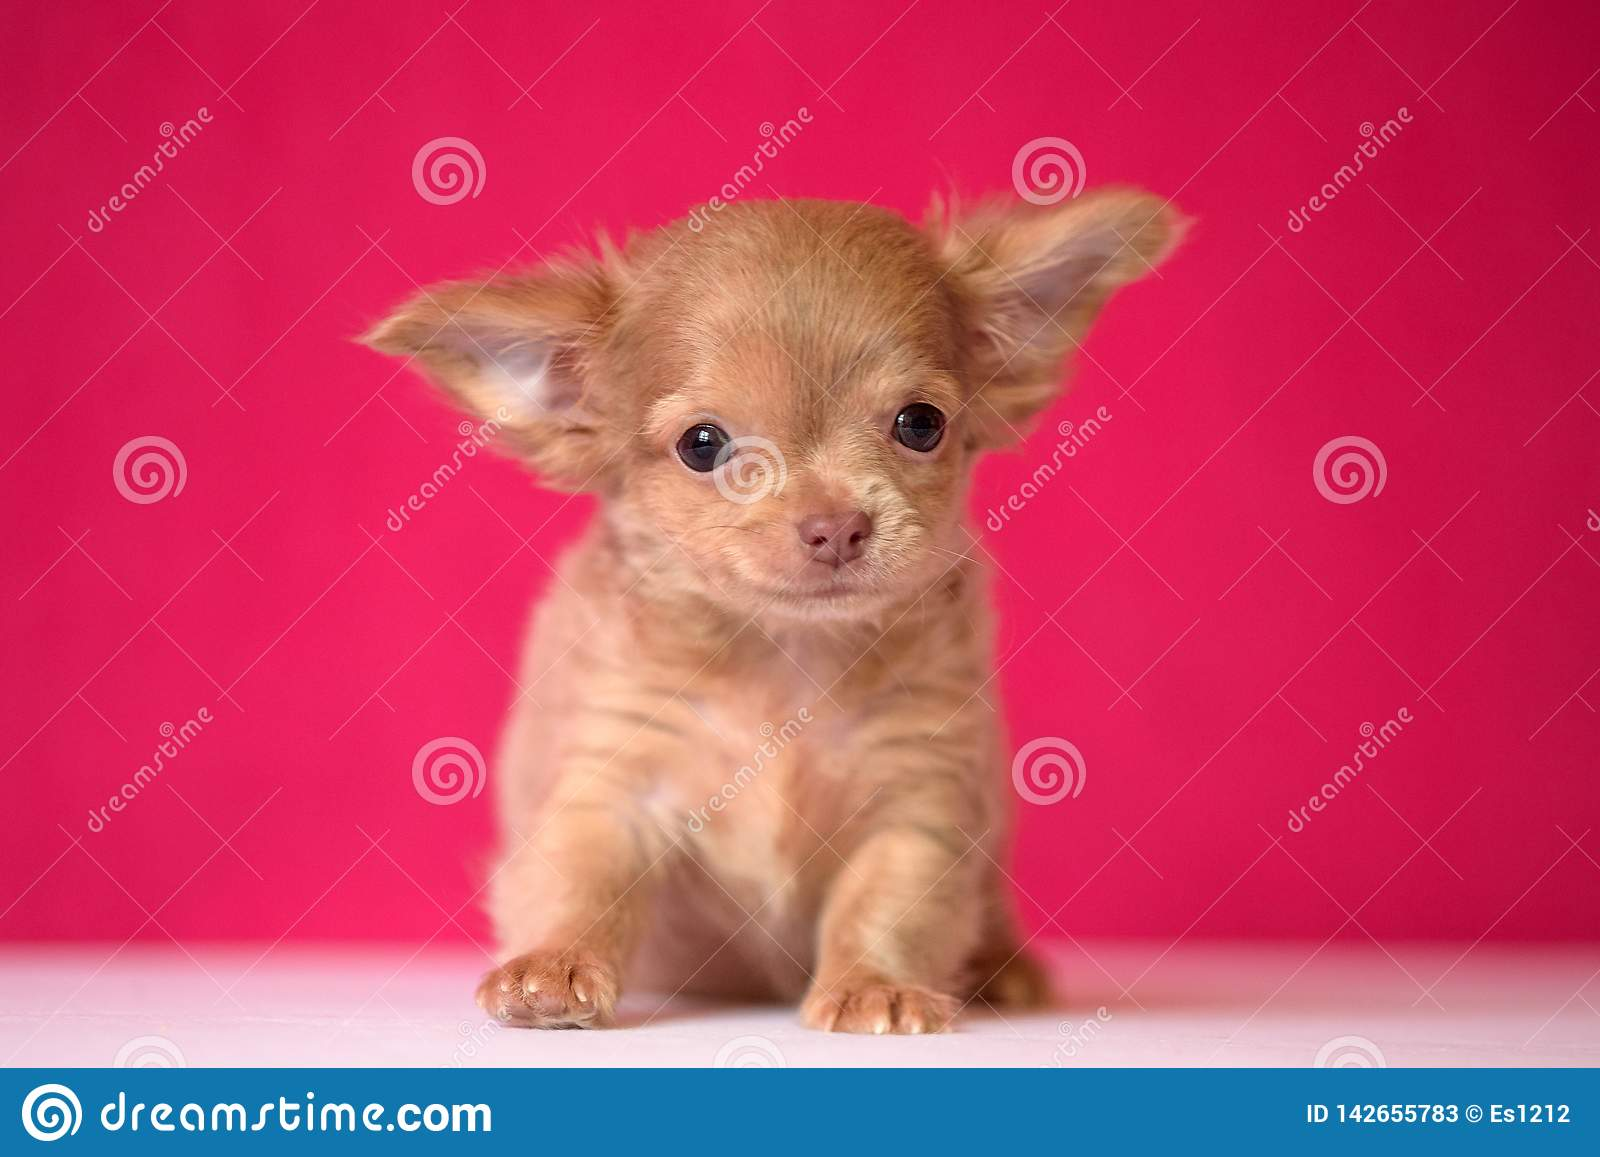 Cute Red Haired Chihuahua Puppy Sits On A Crimson Background Stock Image Image Of Brown Playful 142655783